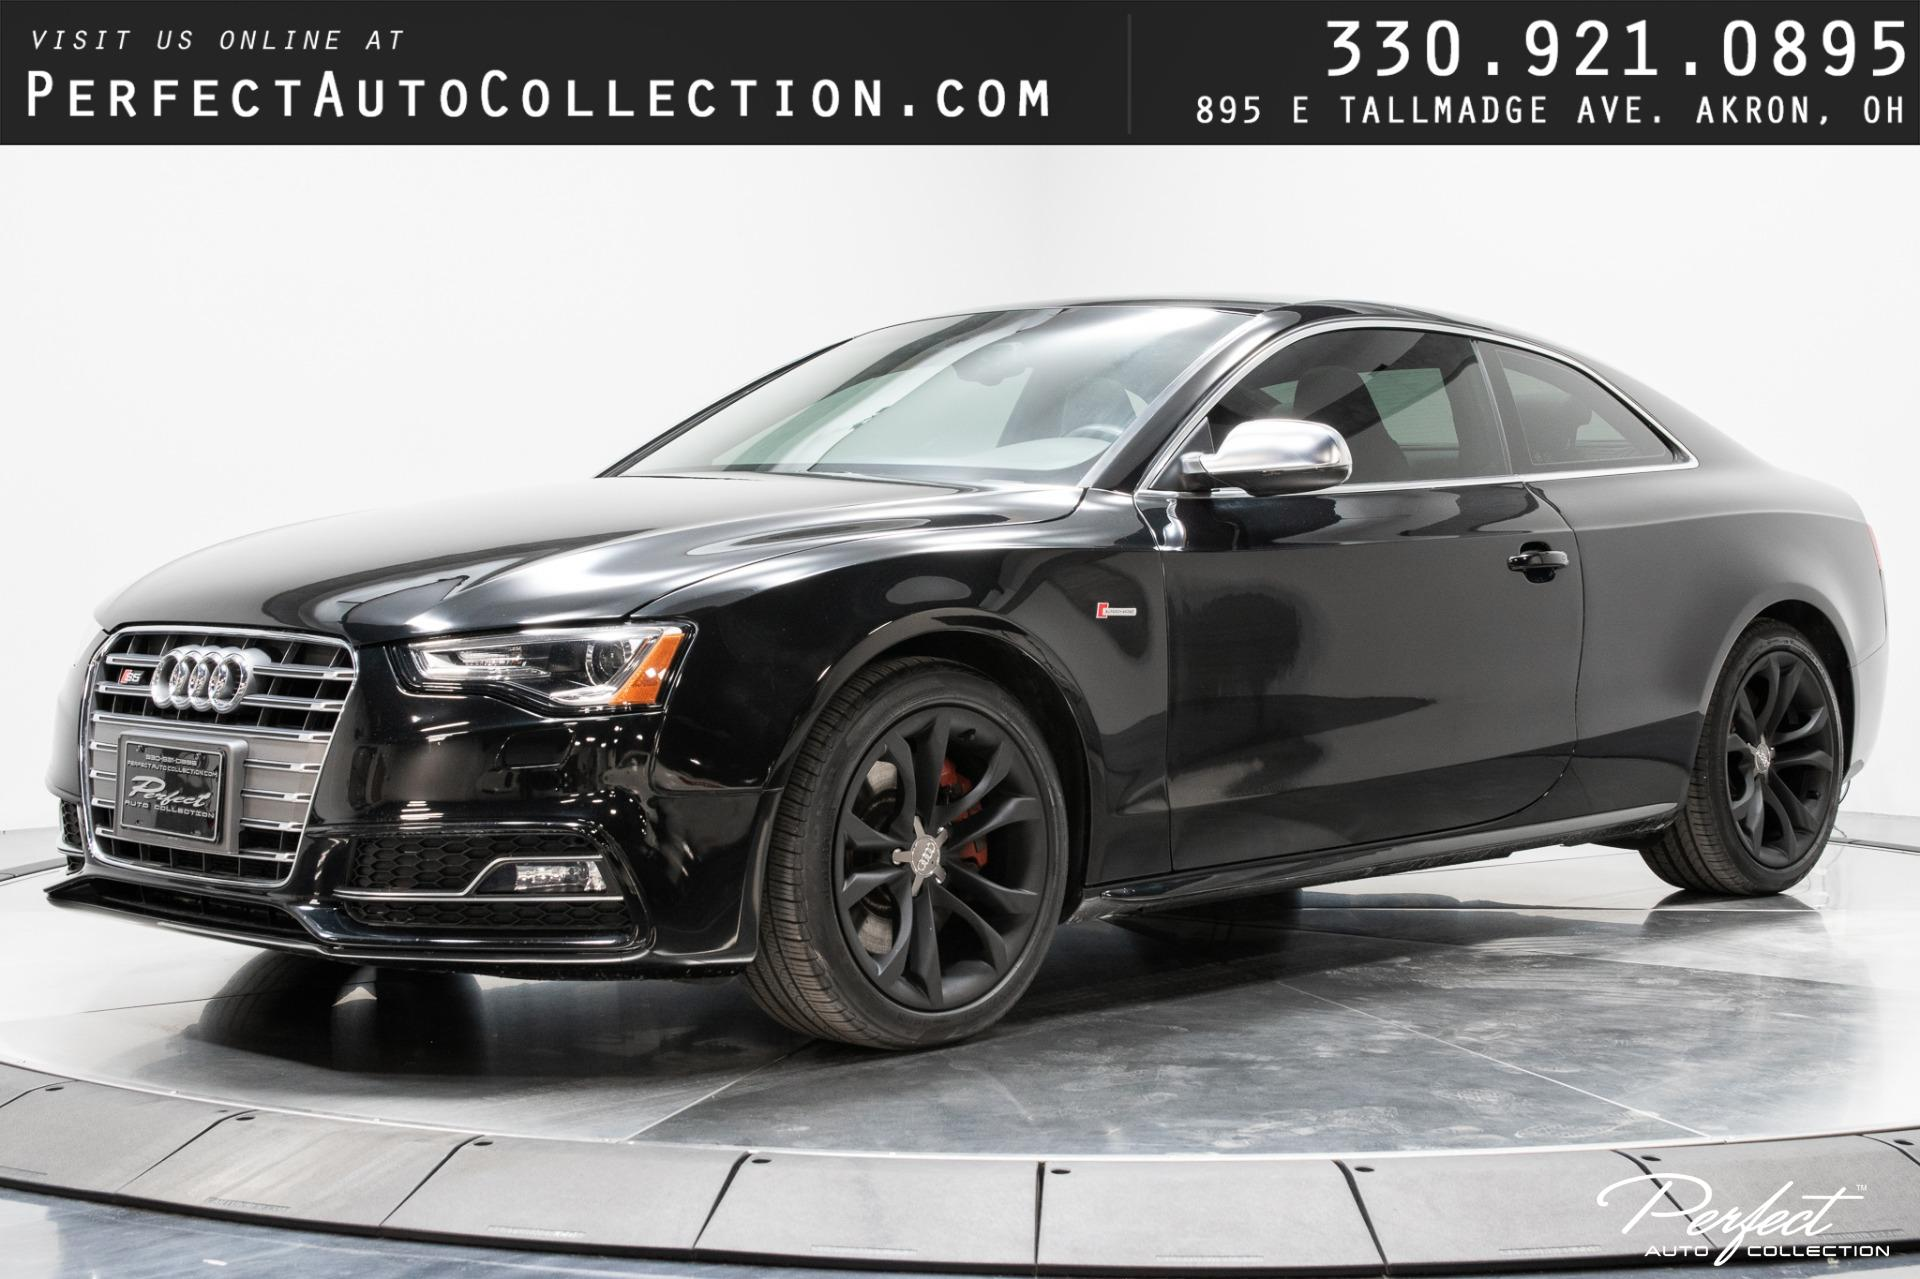 Used 2015 Audi S5 3.0T quattro Premium Plus for sale Sold at Perfect Auto Collection in Akron OH 44310 1